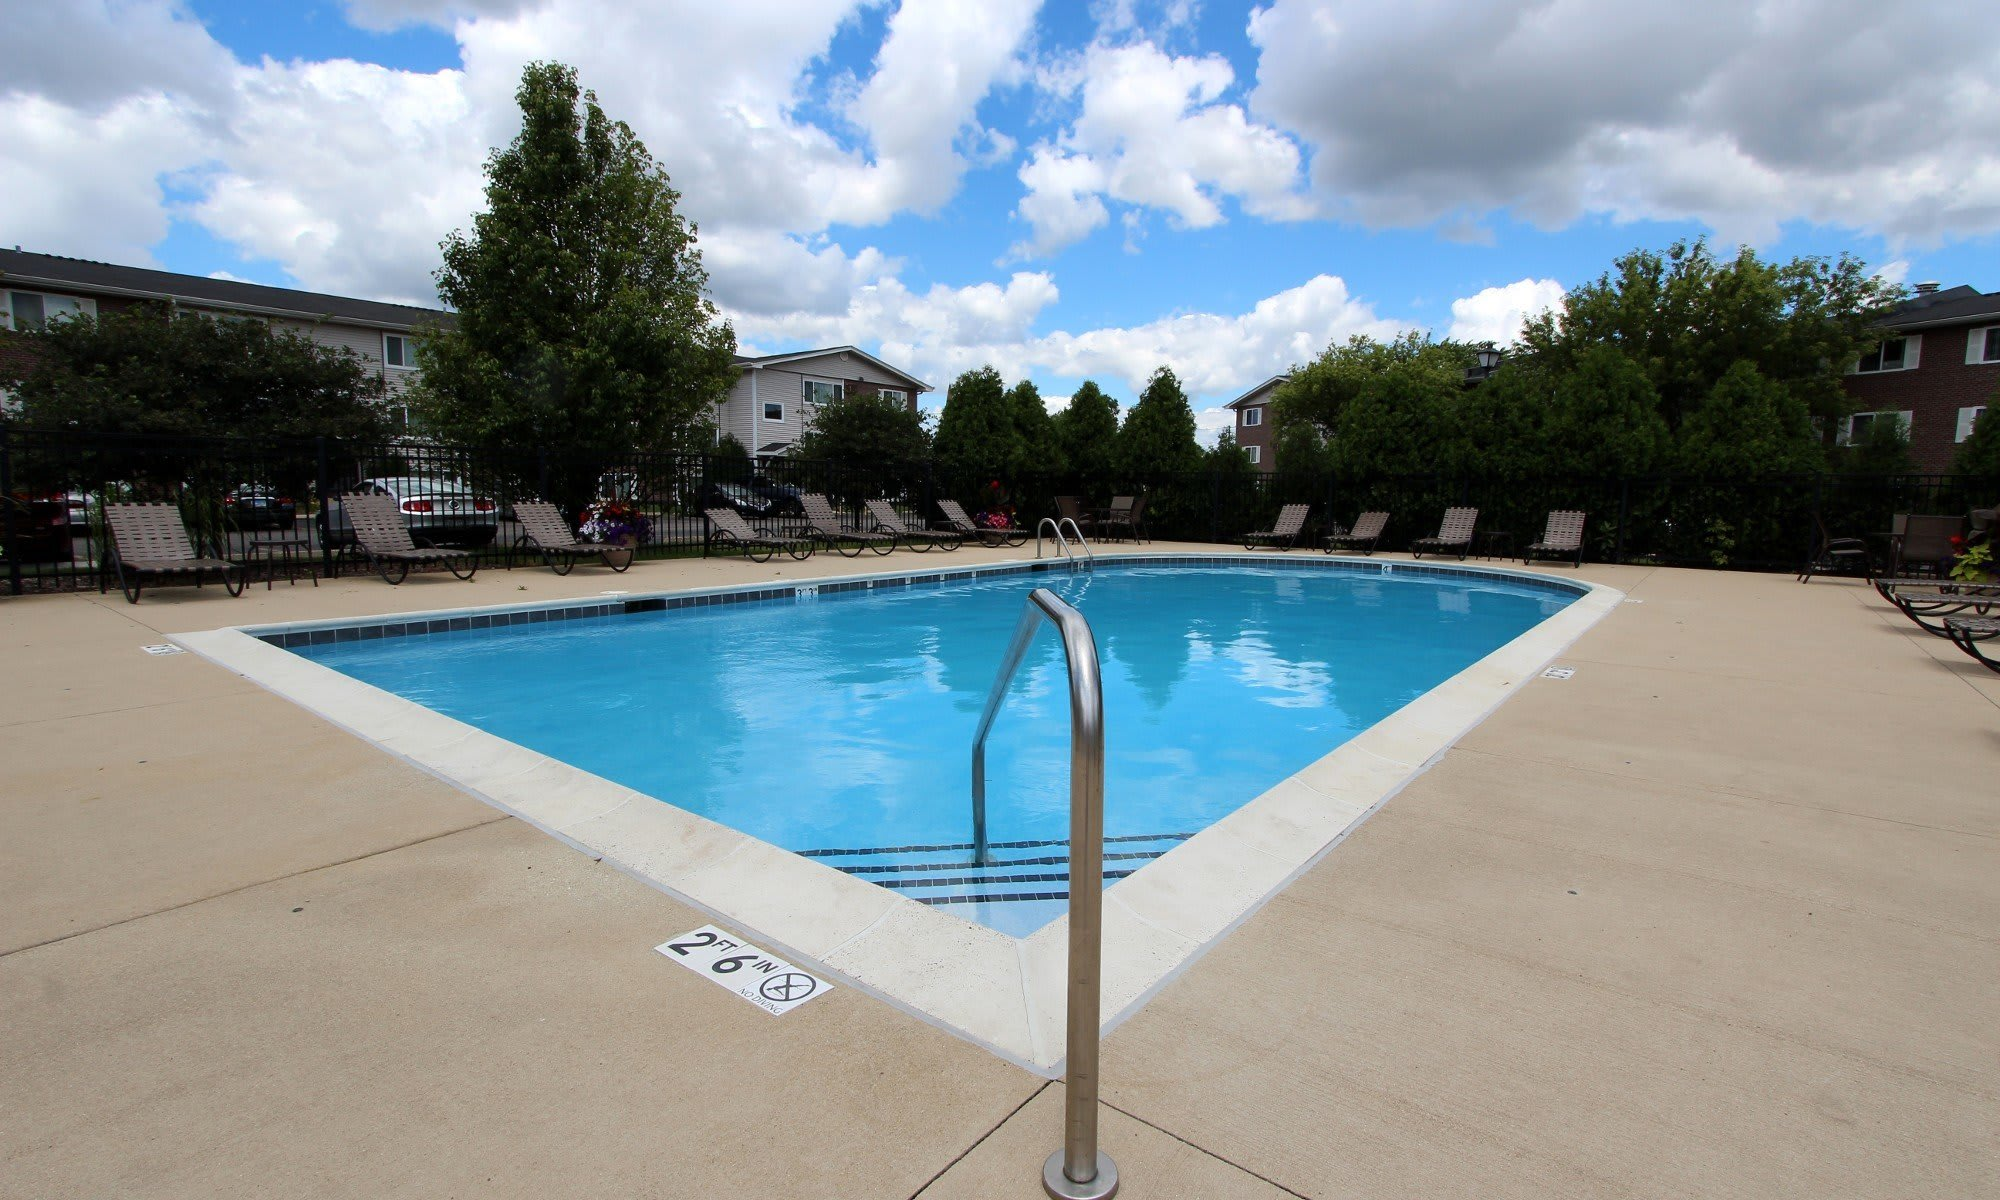 The pool area with lounge chairs at West Line Apartments in Hanover Park, Illinois